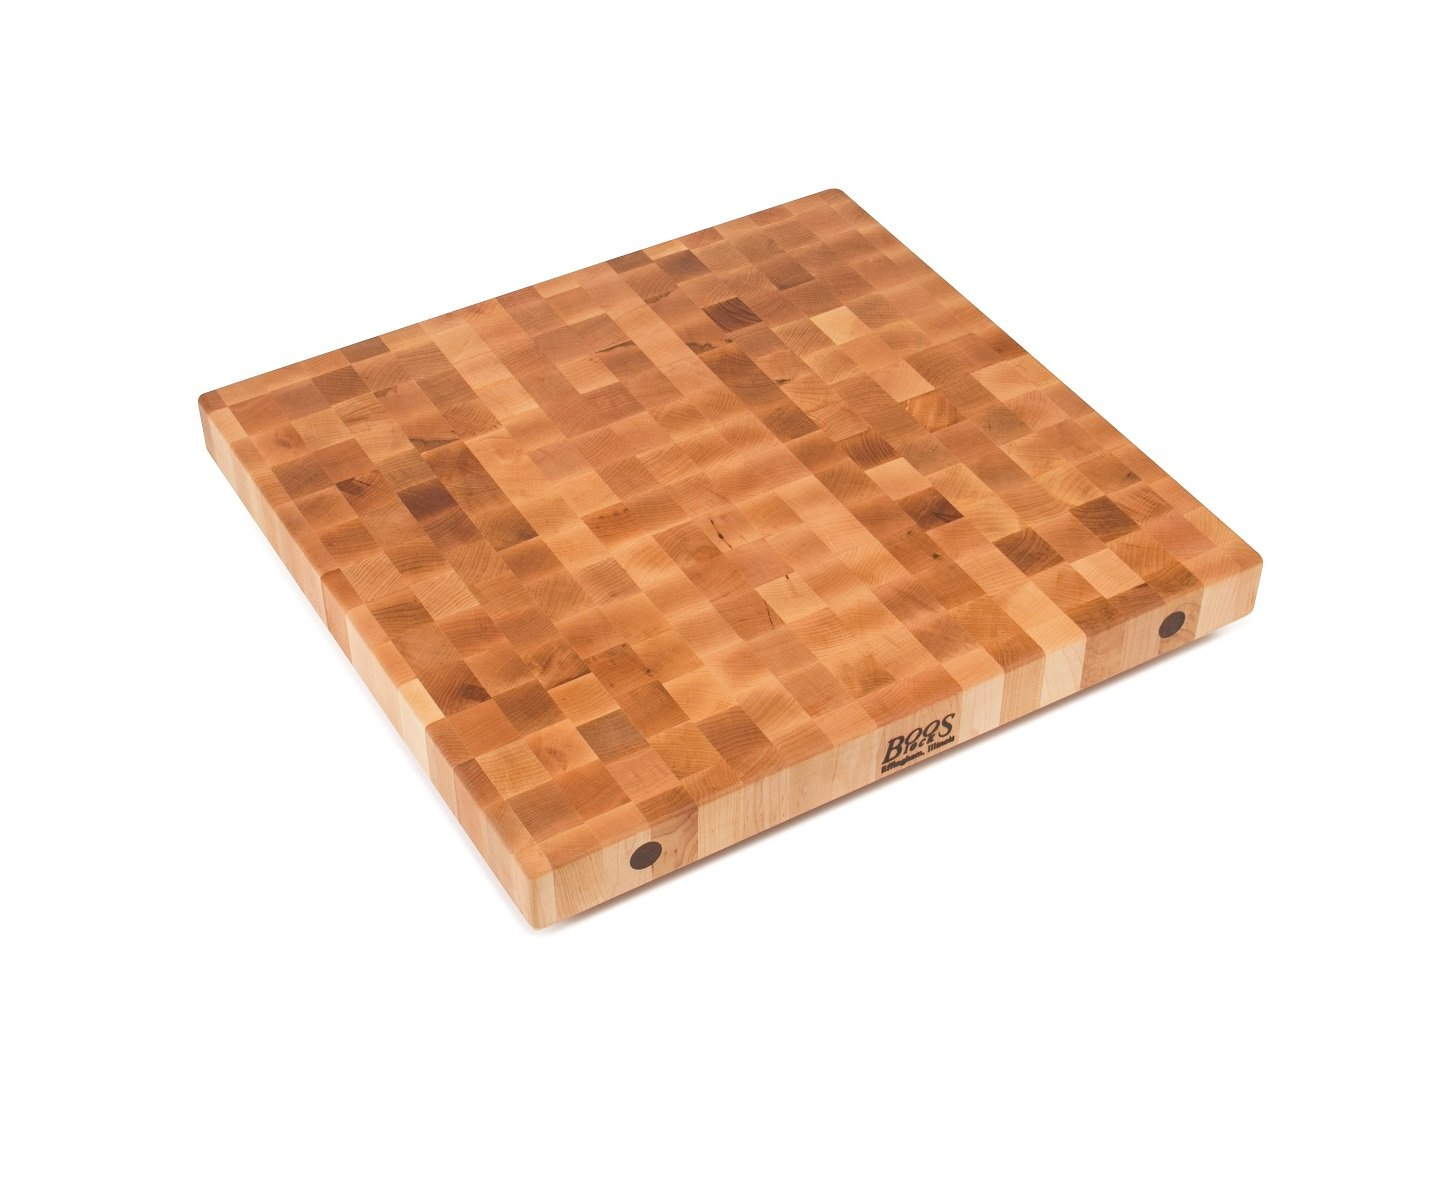 John Boos BBIT36272 End Grain Butcher Block Island Top 36 x 27 x 2.25'' Maple Wood